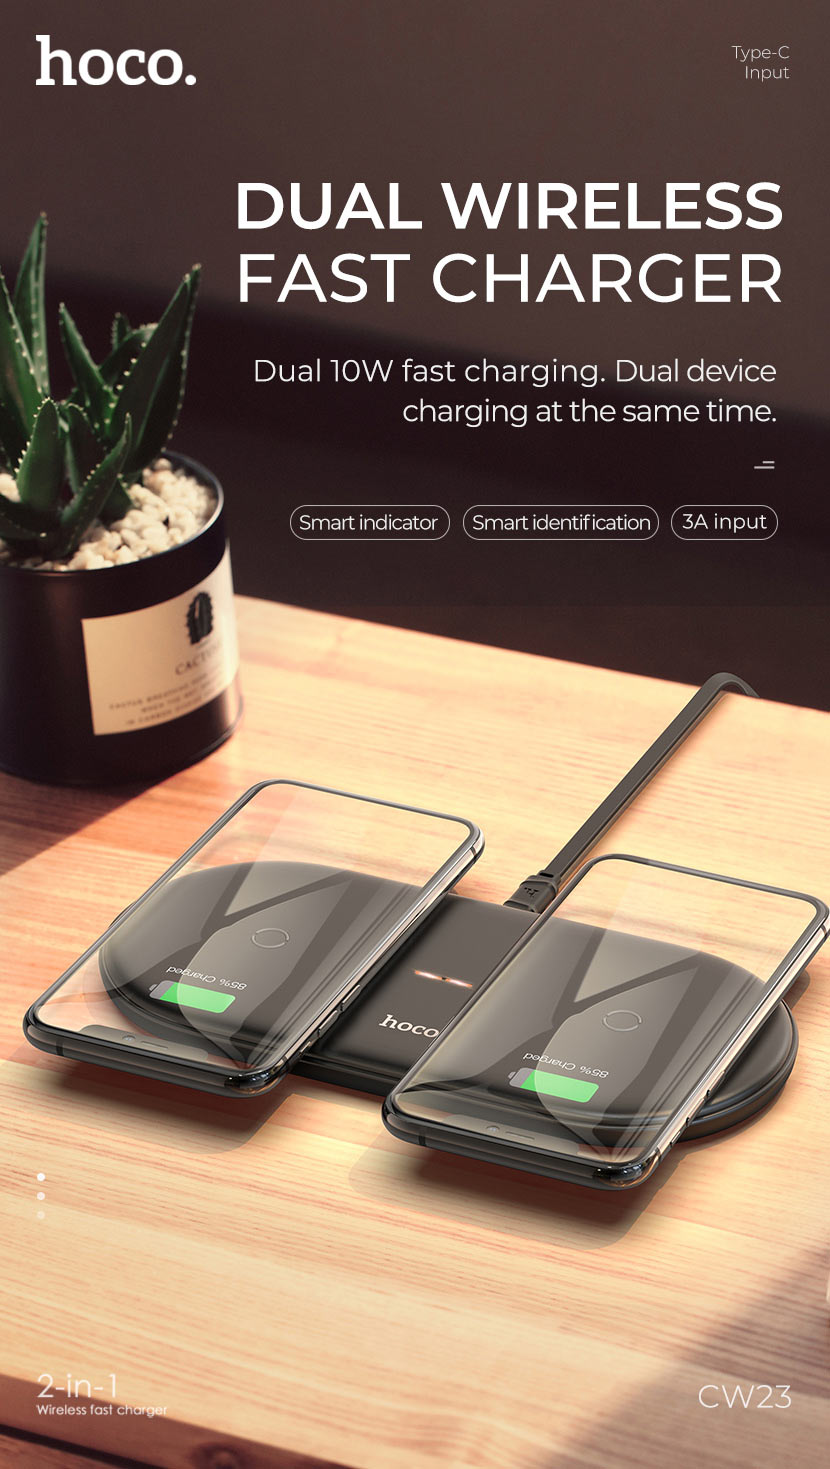 hoco news cw23 dual power wireless fast charger 10w en